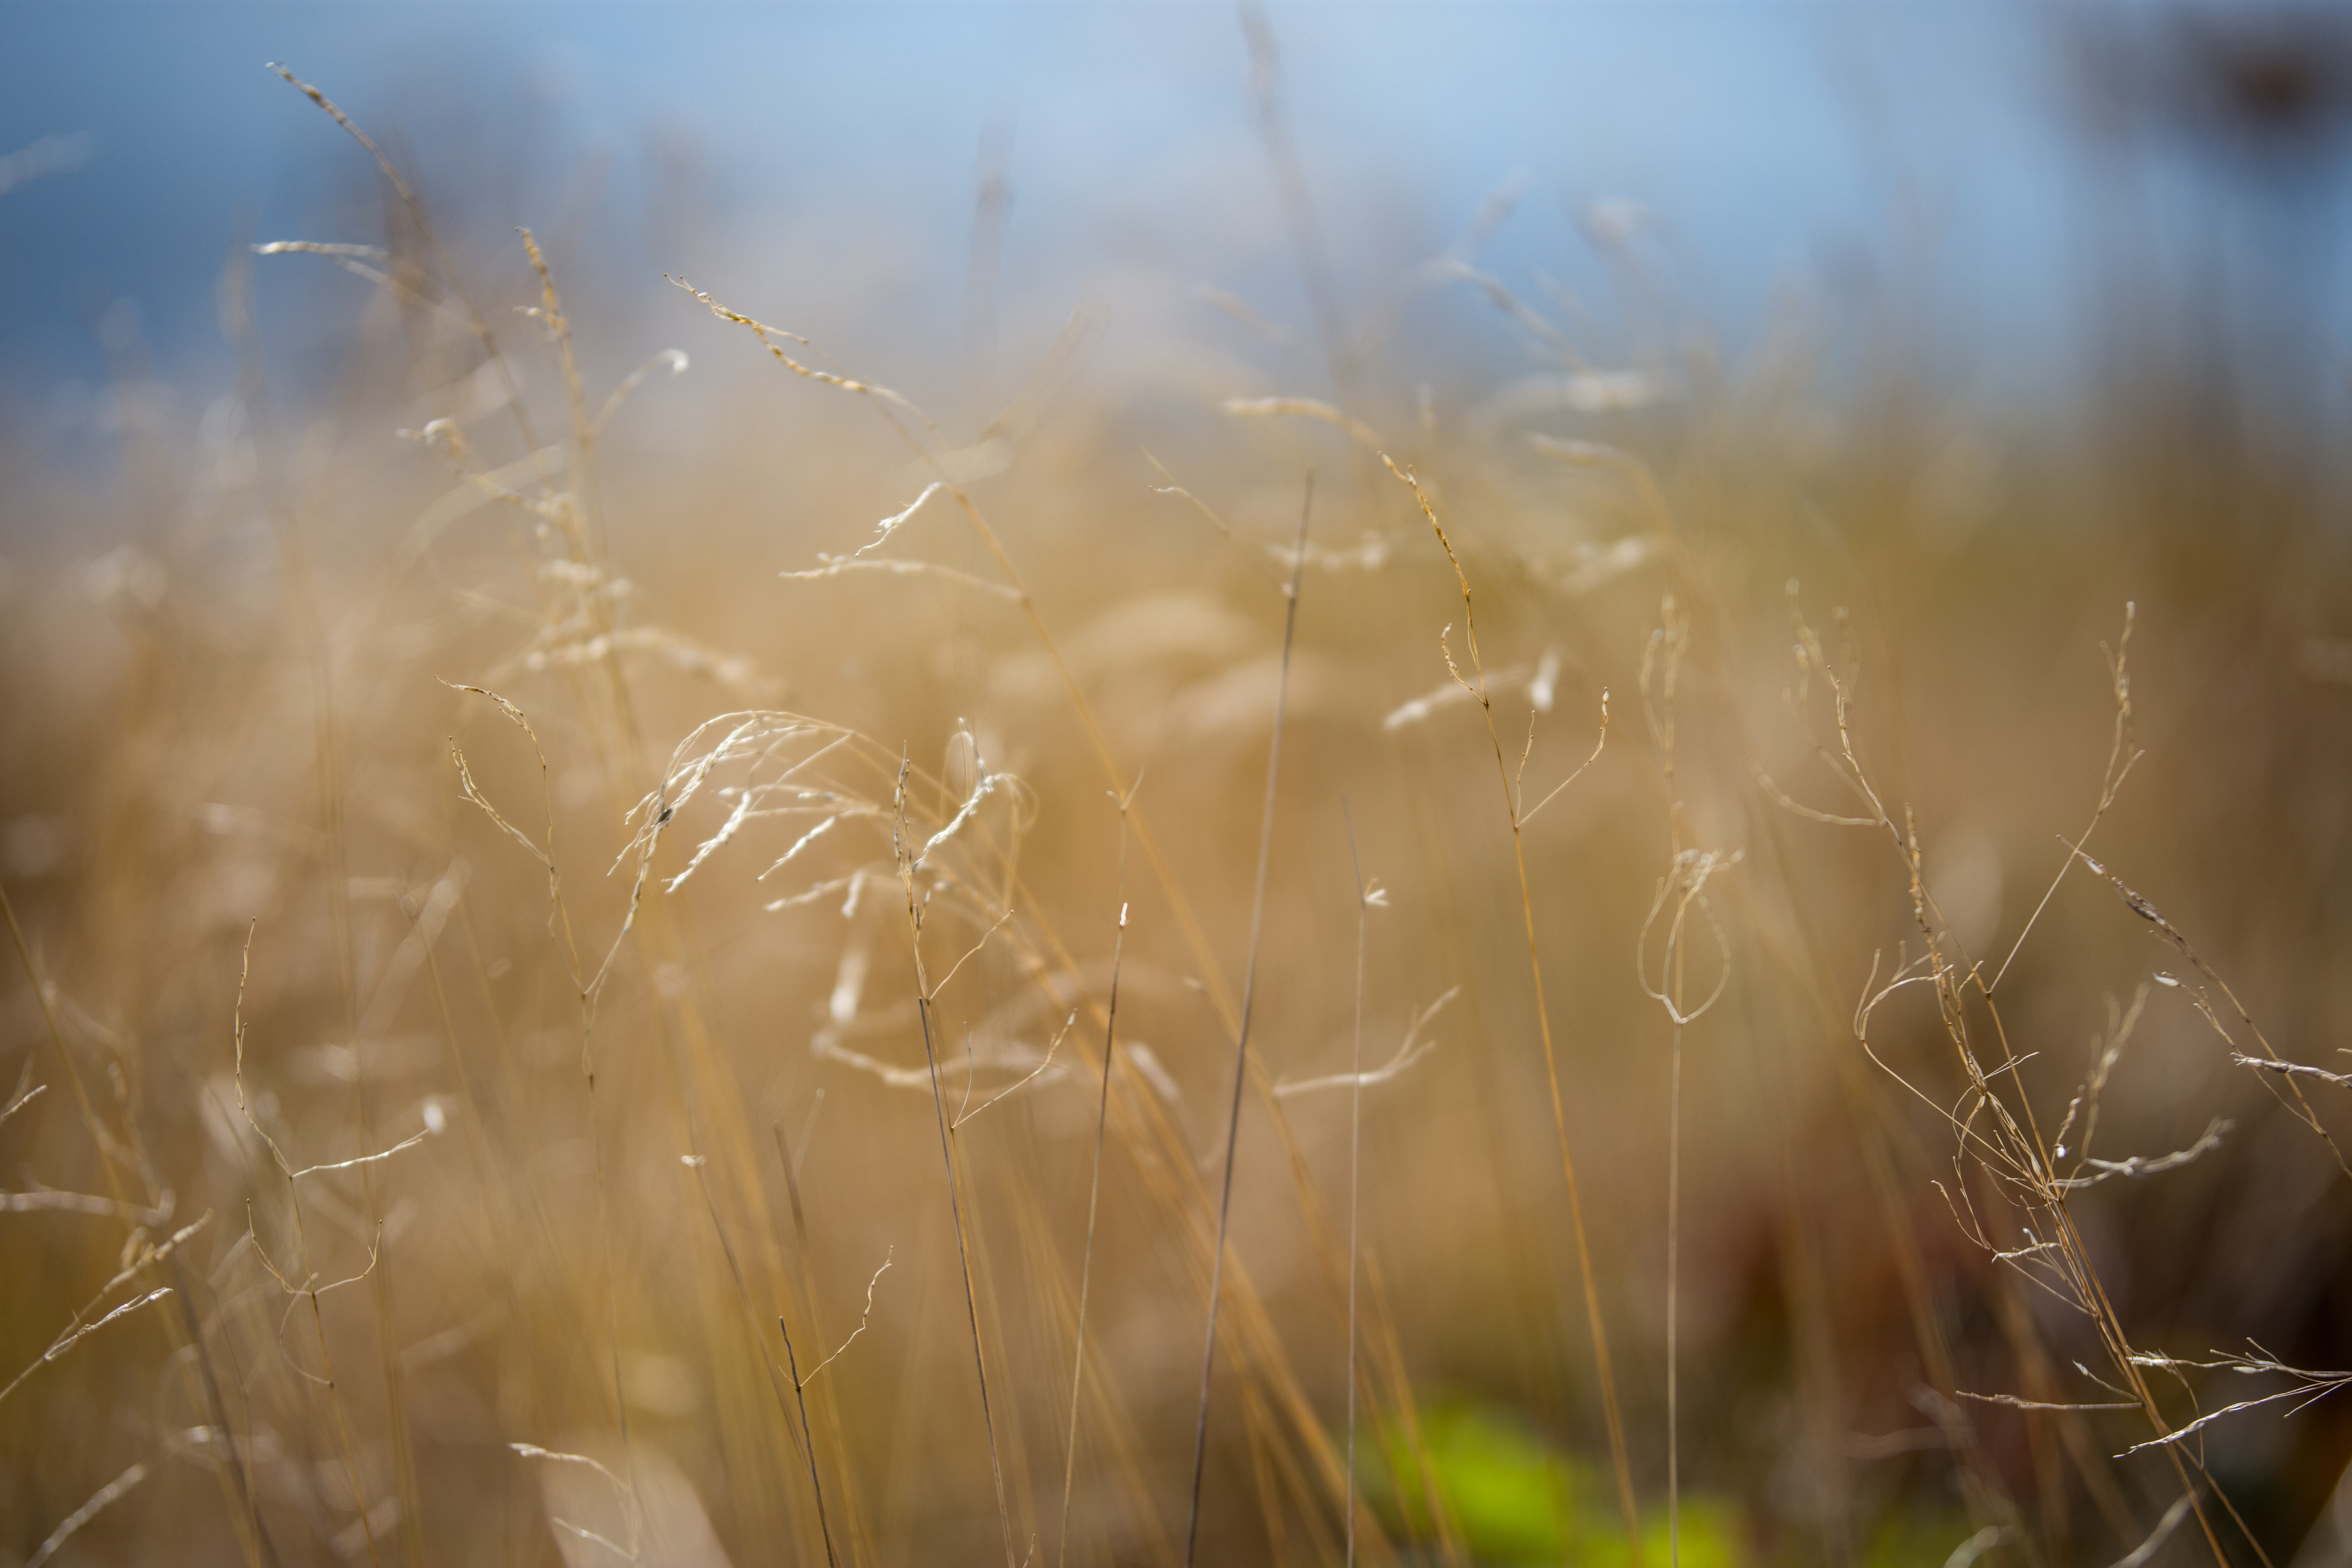 Macro of dry grass in a field